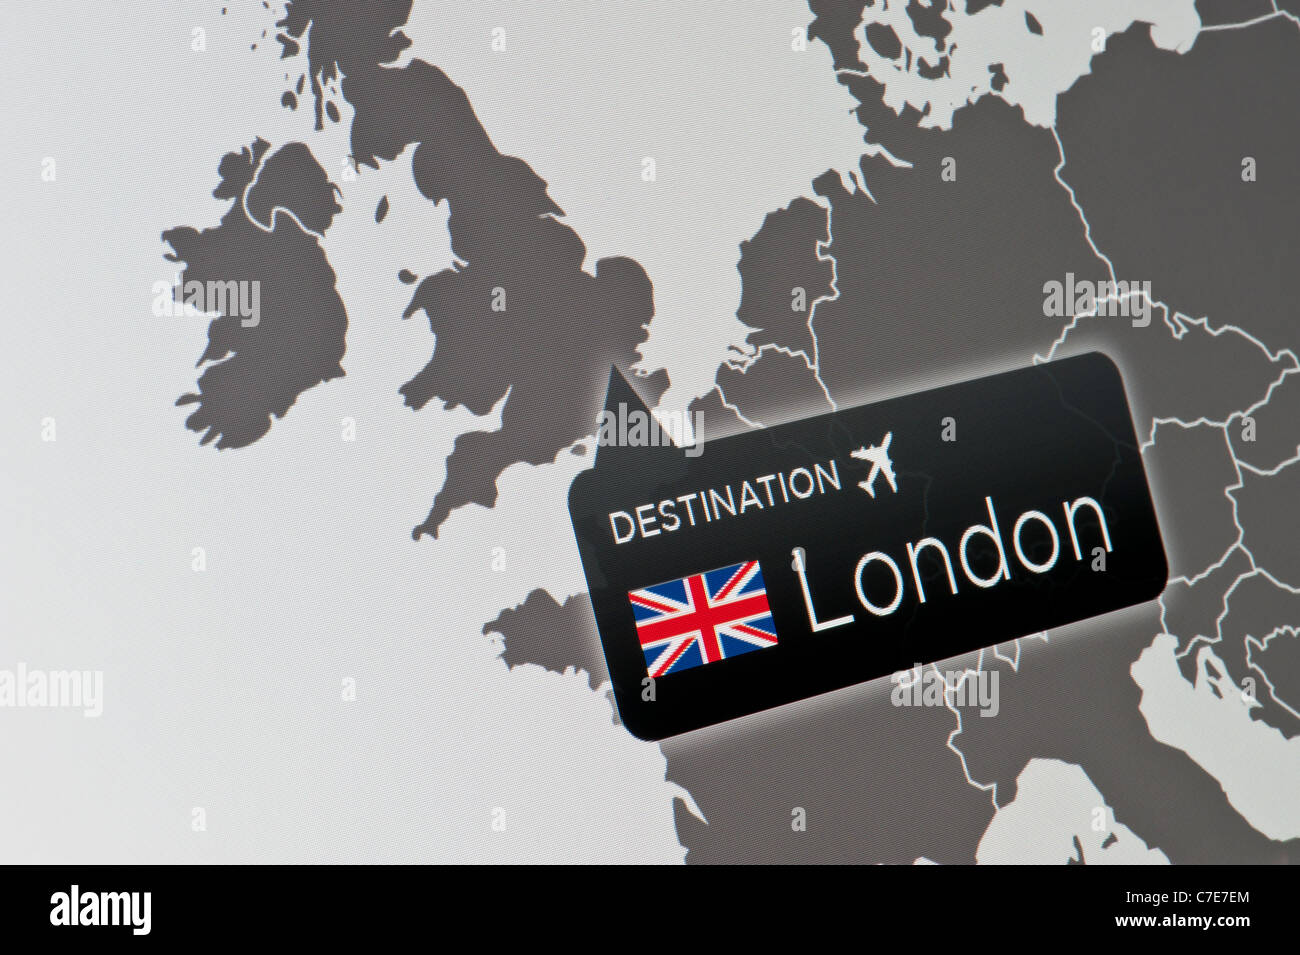 A close-up of a computer display indicating the location of Heathrow Airport, London, United Kingdom. - Stock Image